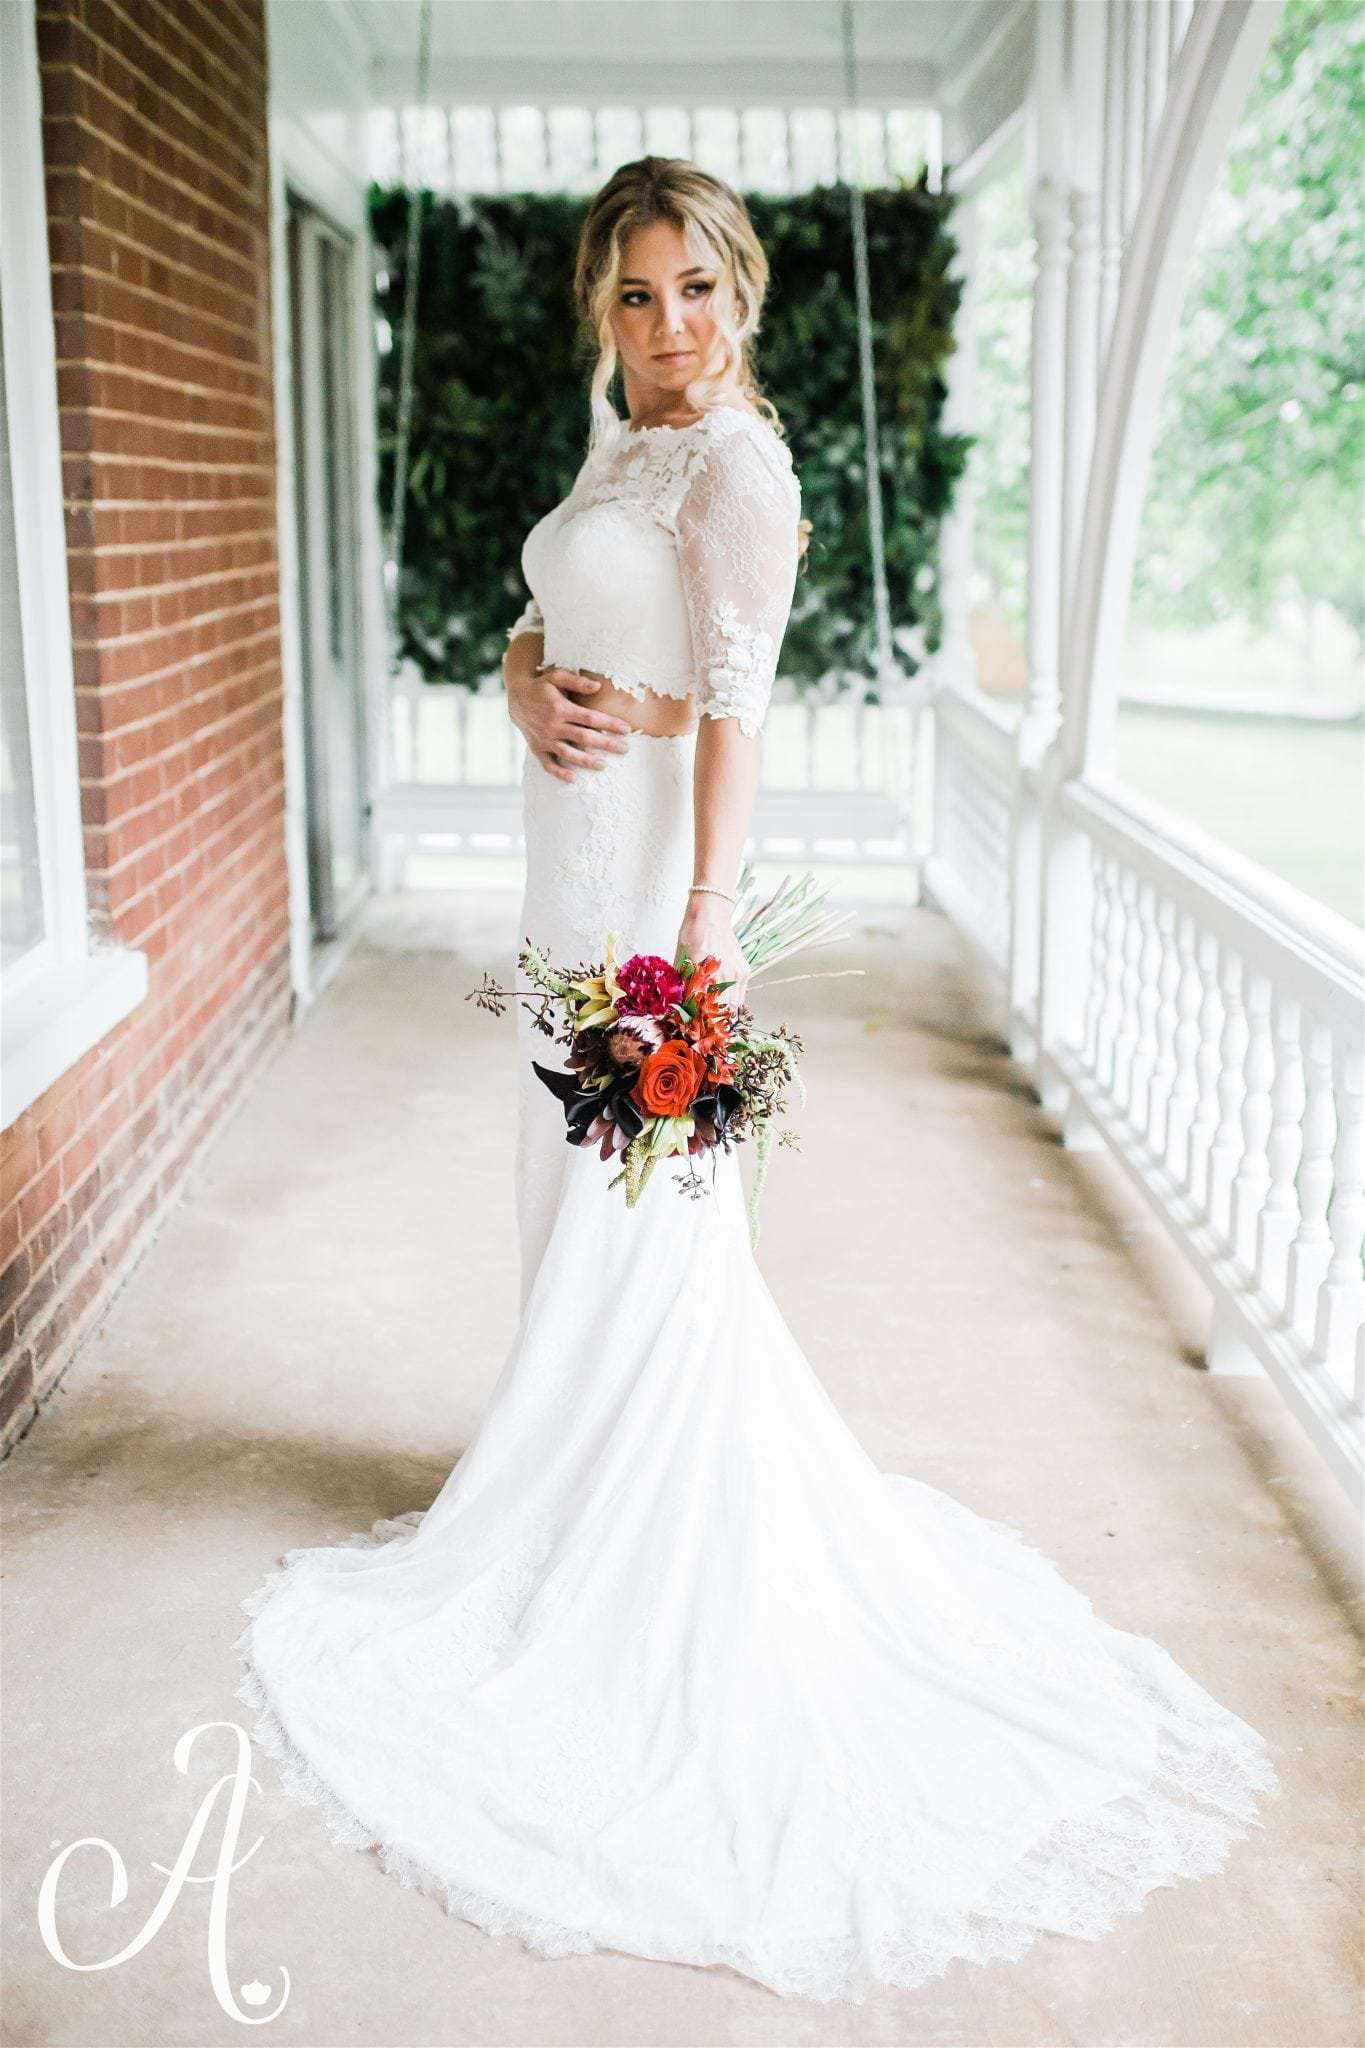 Knoxville Wedding Gowns Proms Formal Wear Prom Gowns Prom Dresses Homecoming Dresses M Plus Size Bridal Dresses Wedding Dresses Red Wedding Dresses